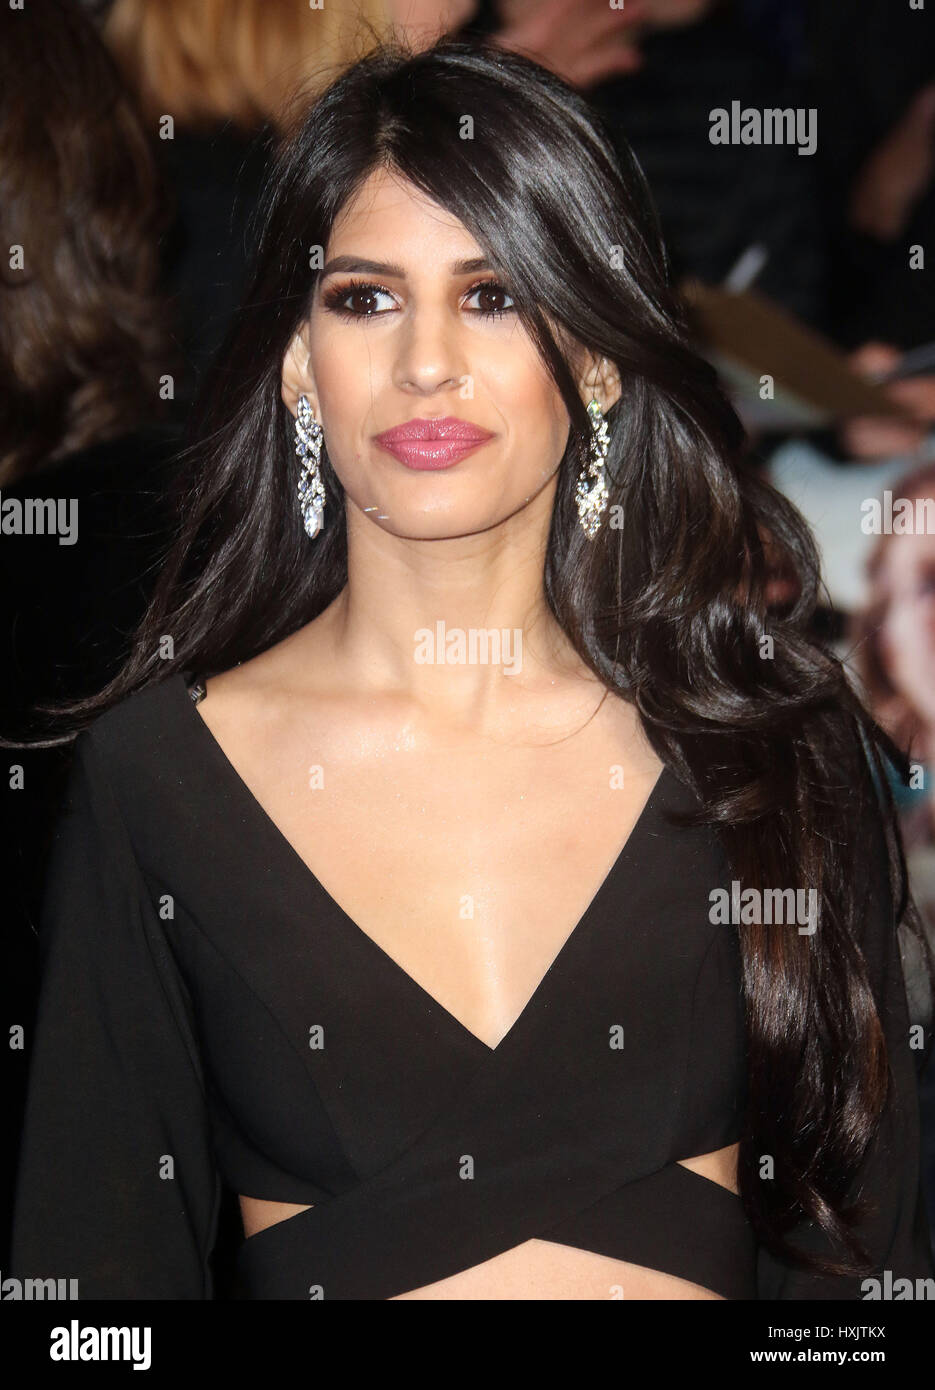 Mar 16, 2017 - Jasmin Walia attending Another Mother's Son' World Premiere, Odeon Leicester Square in London, - Stock Image